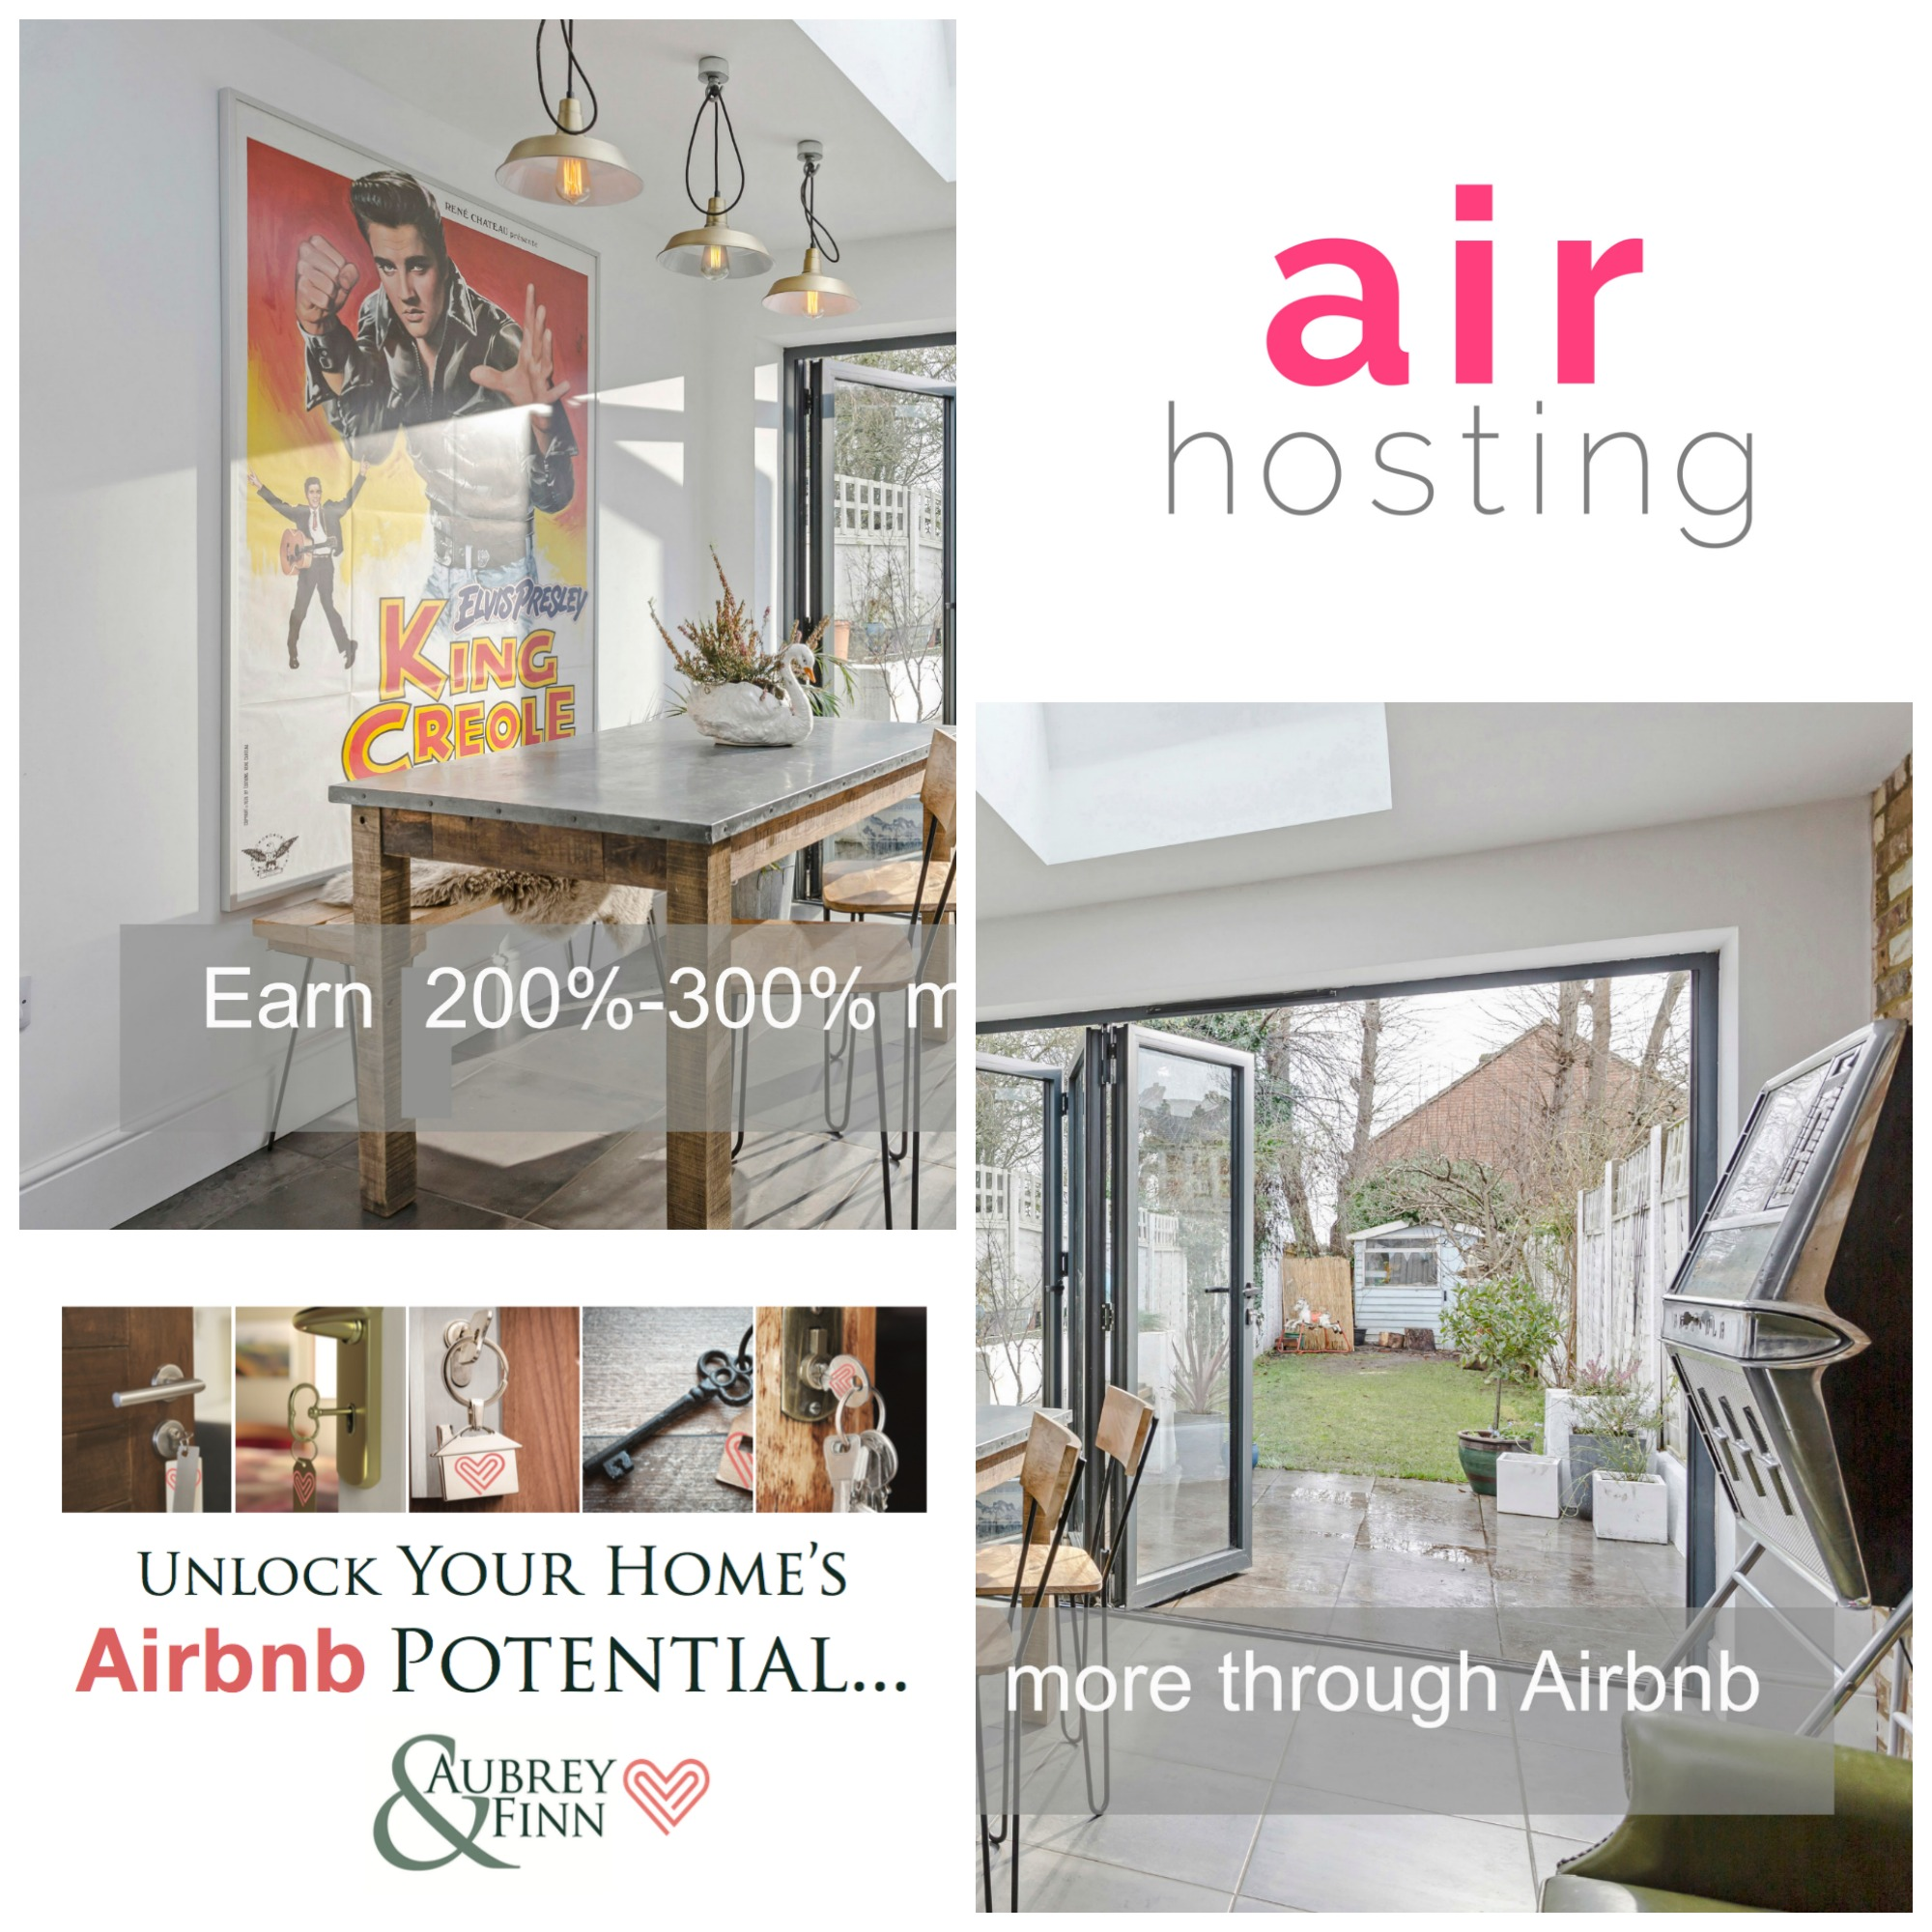 Earn money from your property with our Air Hosting Management Service!